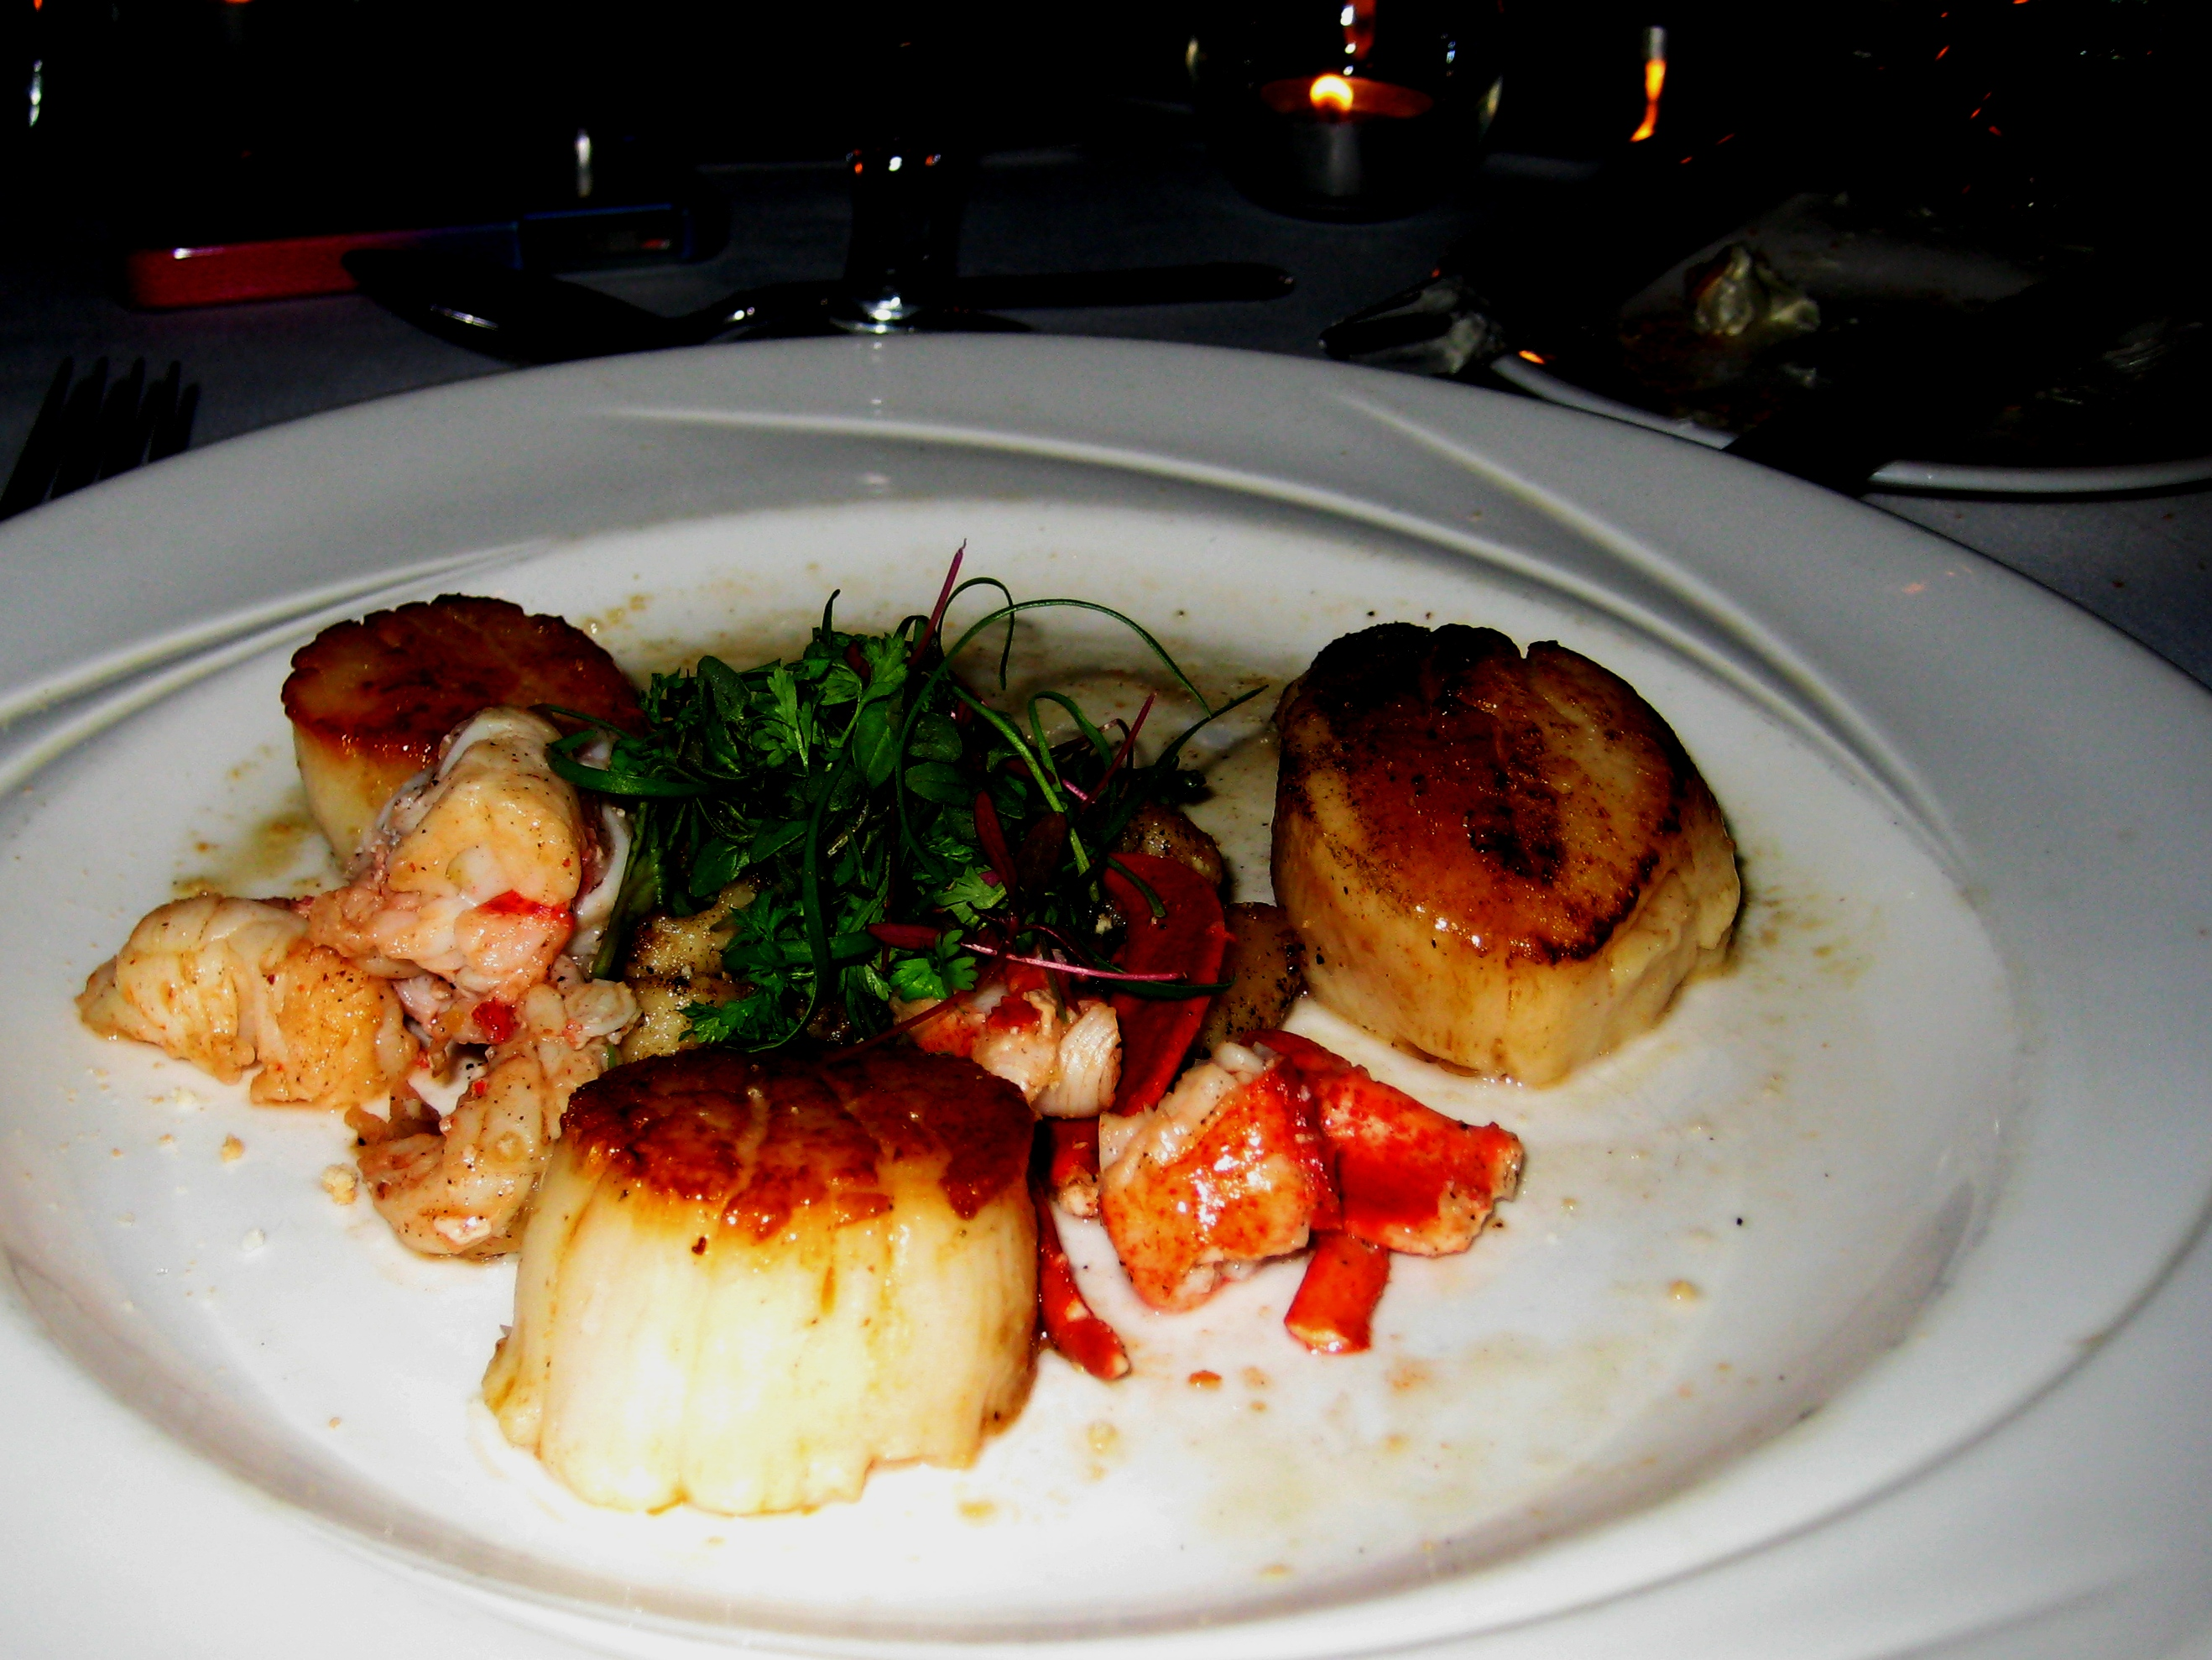 Scallops, Michael's Tasting Room, Sarasota, Fla., Dec. 2010